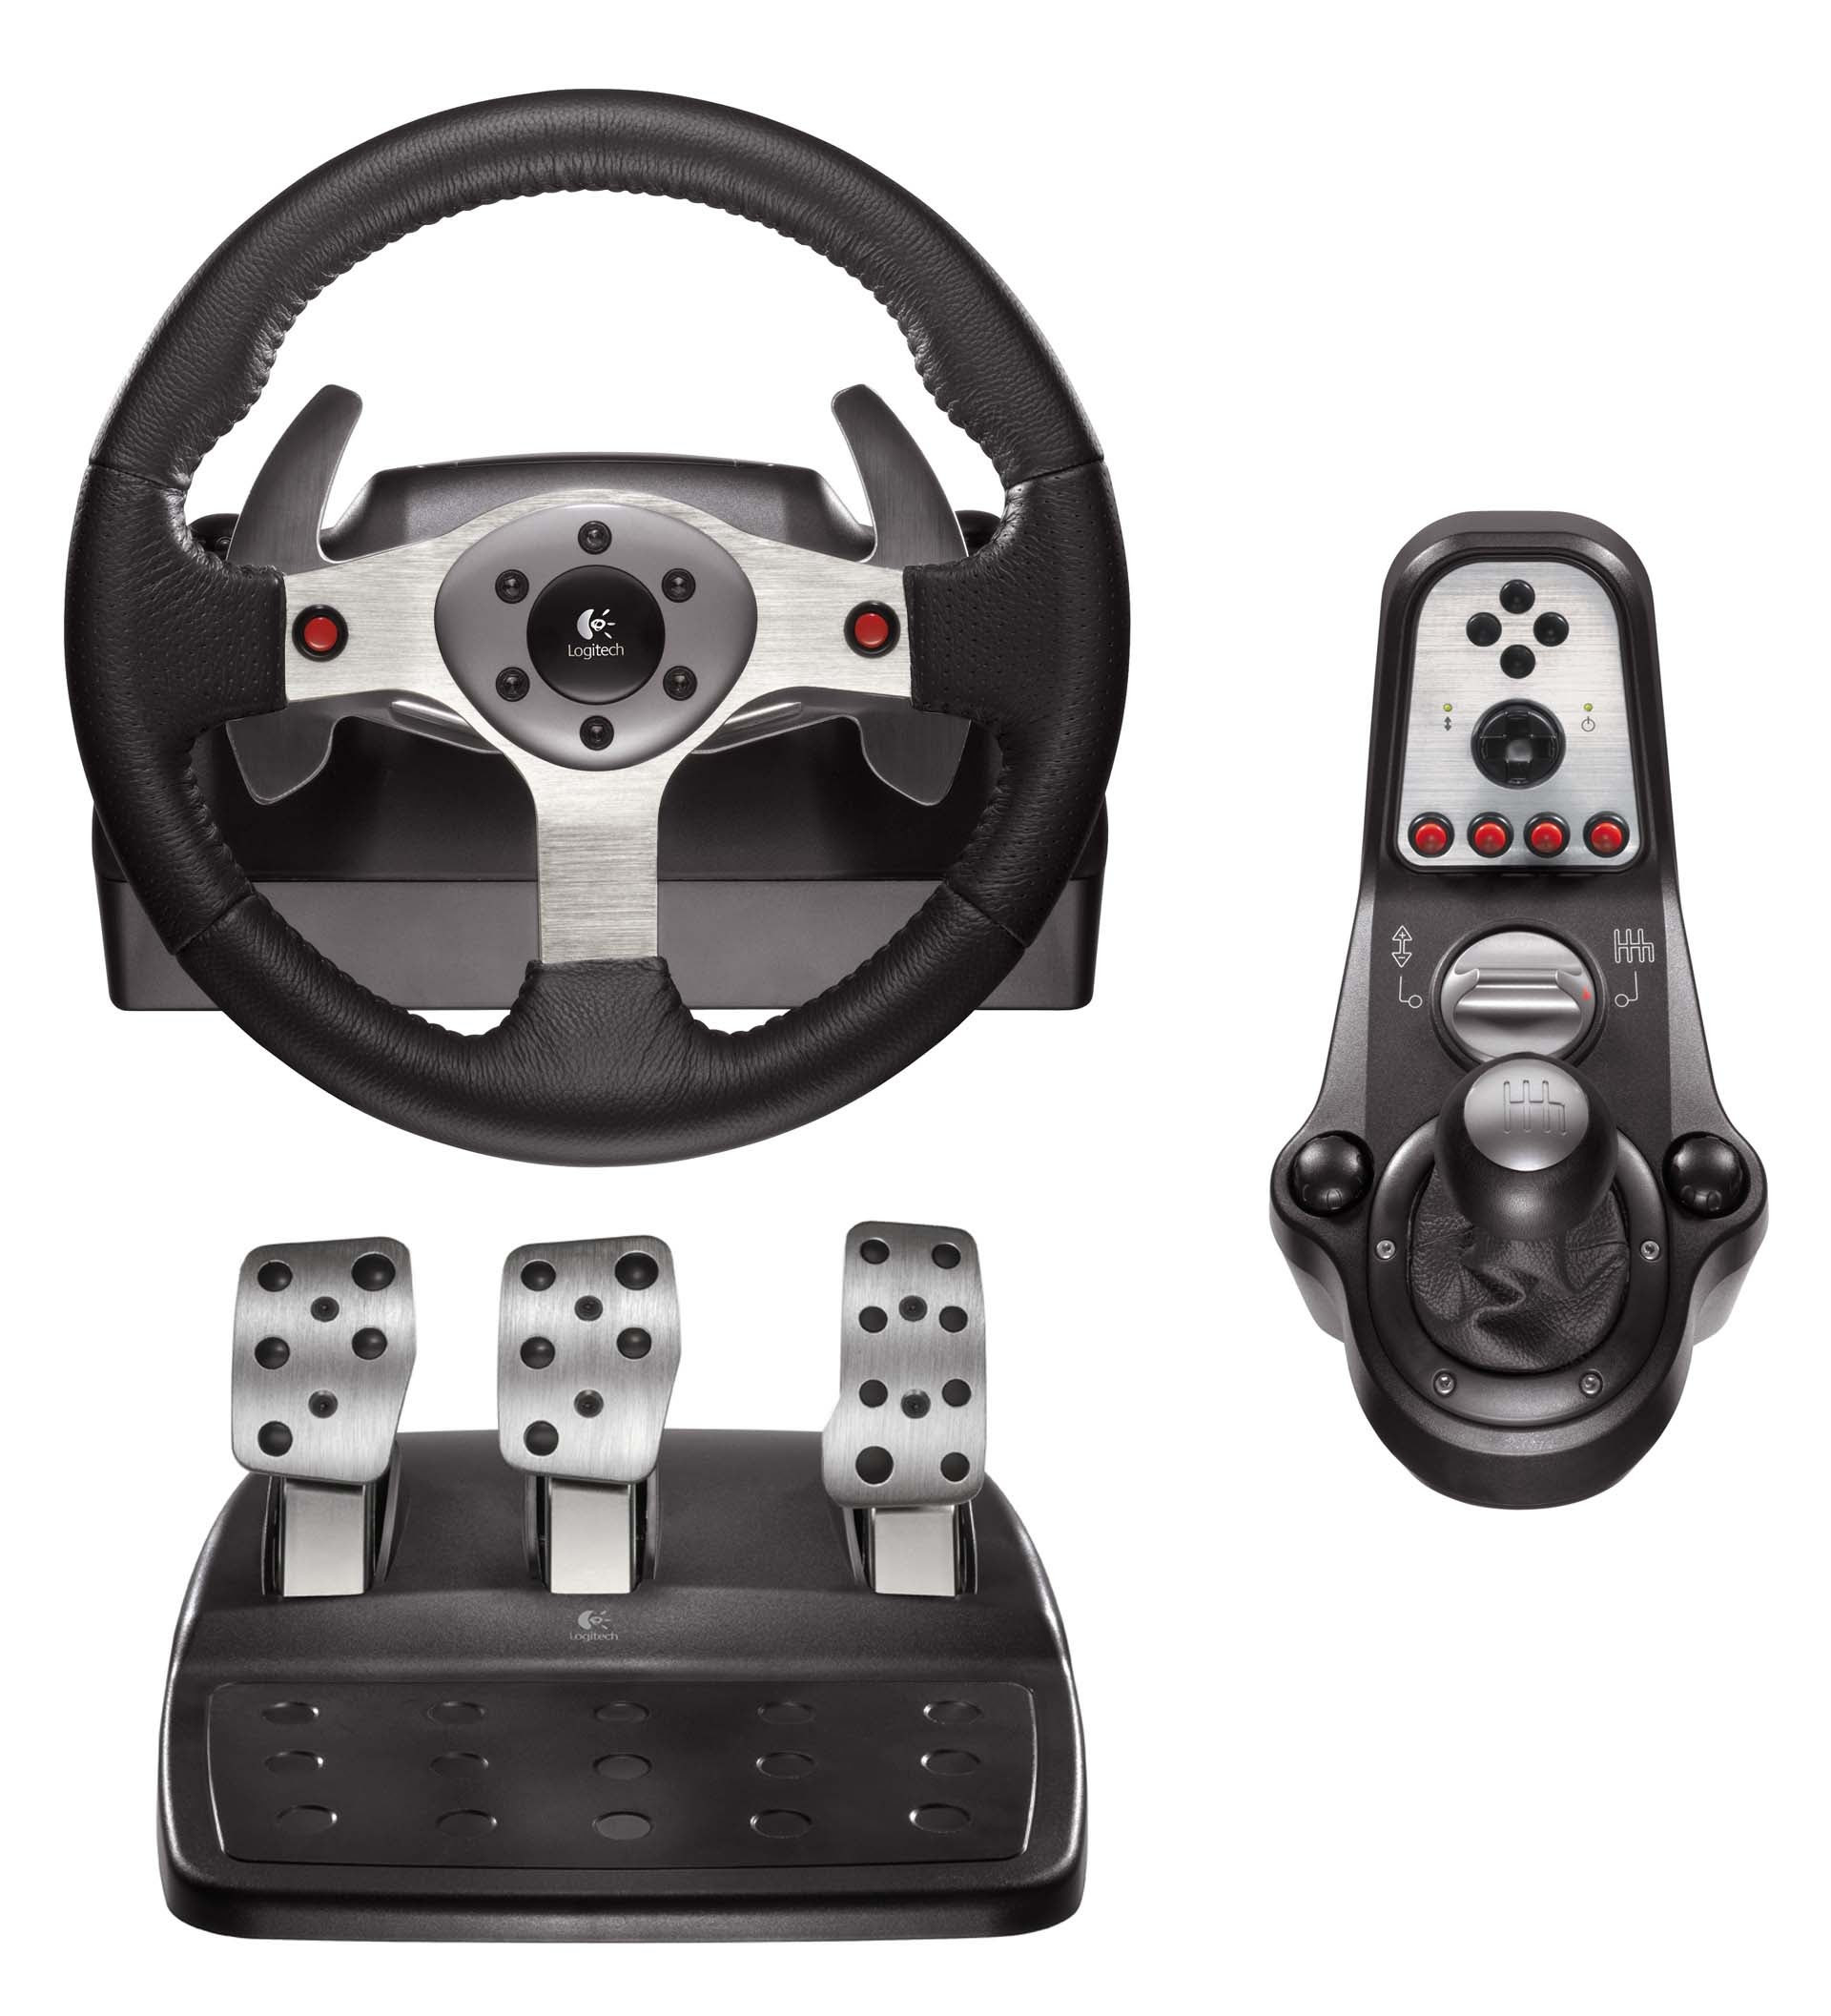 Logitech G25 Mods Any Suggestions